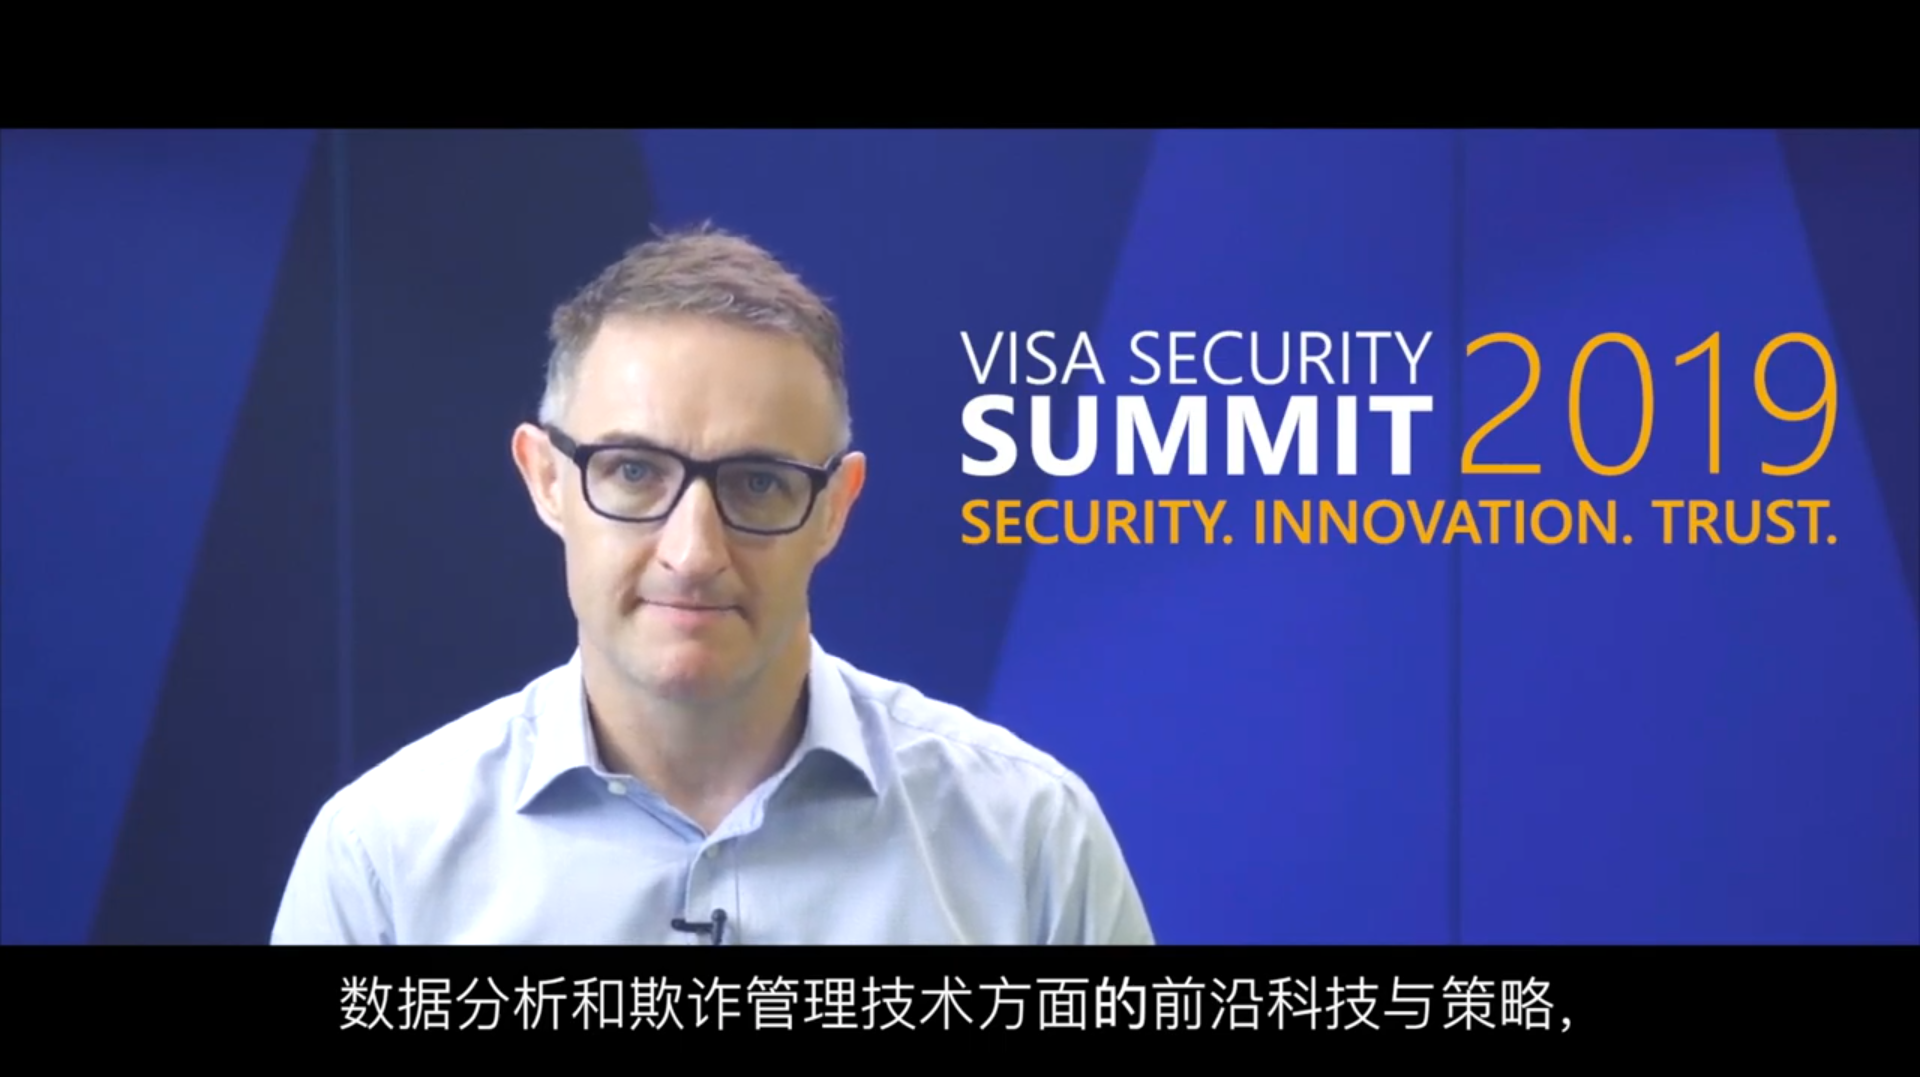 Joe Cunningham with the event name Visa Security Summit 2019, words security, innovation, trust below it, and Chinese subtitles on screen.